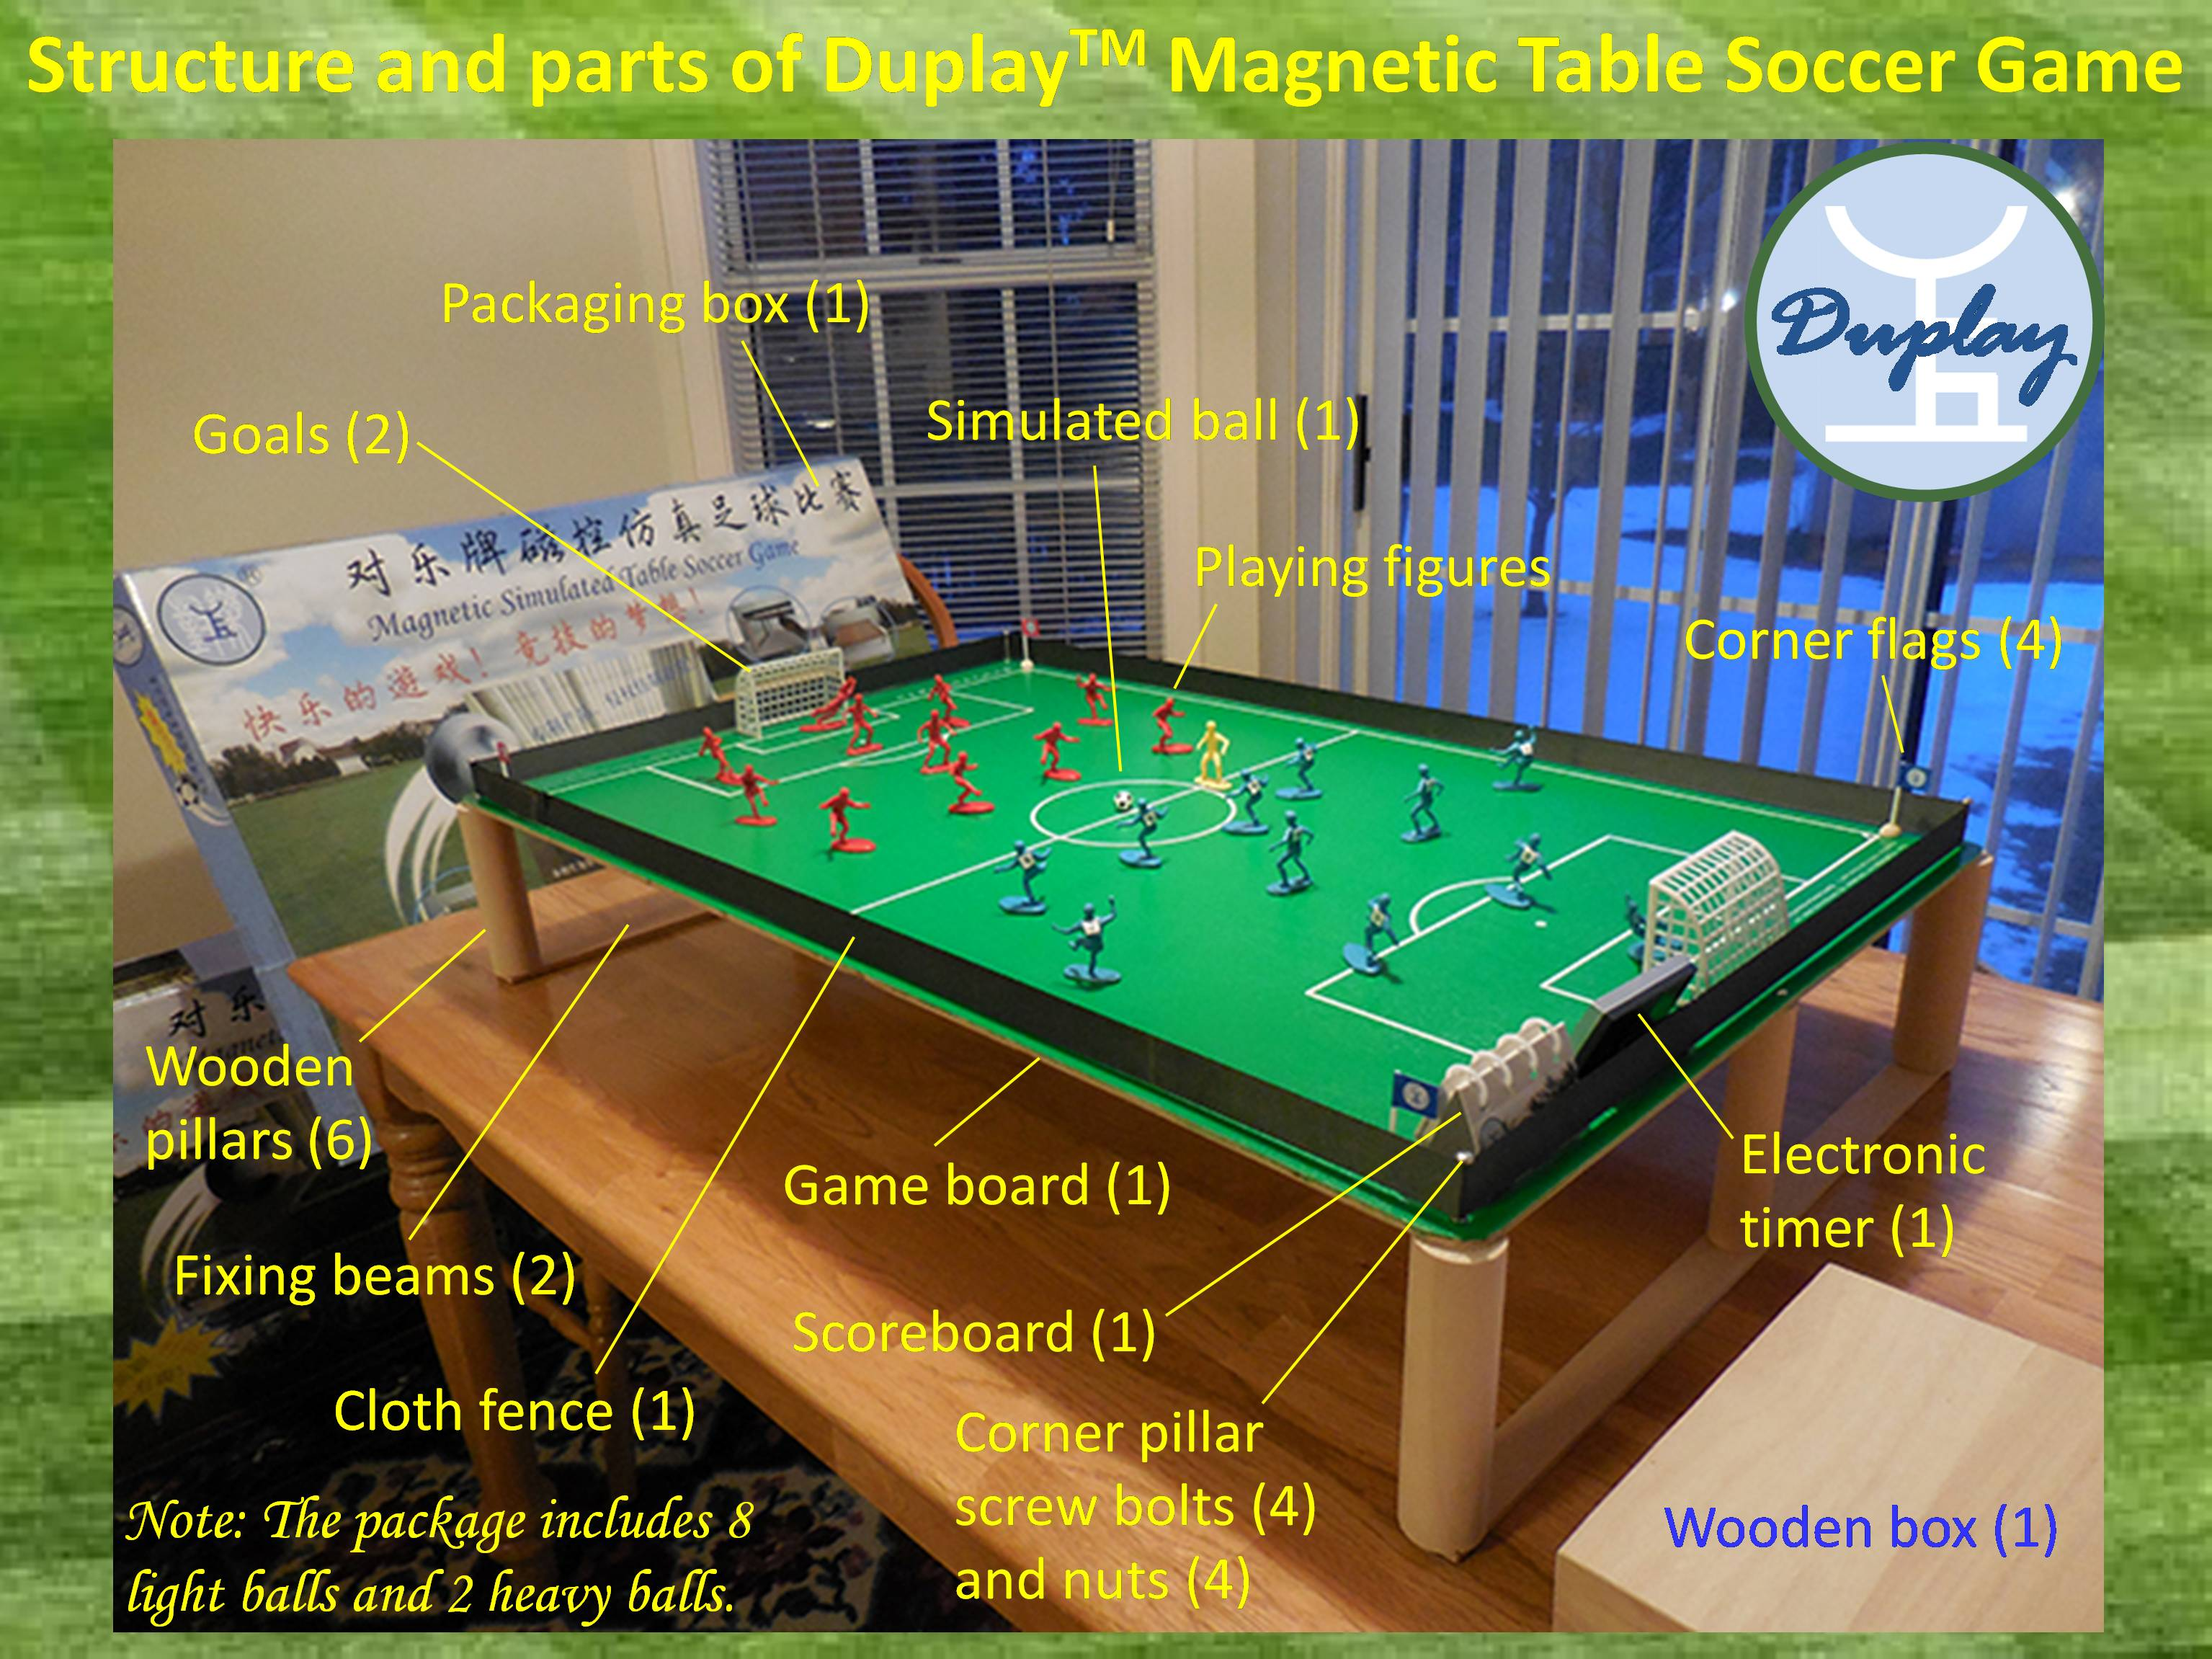 Keywords Of Product Features: Foosball Table, Football Game, Magnetic Game, Soccer  Match, Table Game, Tabletop, Sports, Toy, Board Game, Table Top, ...